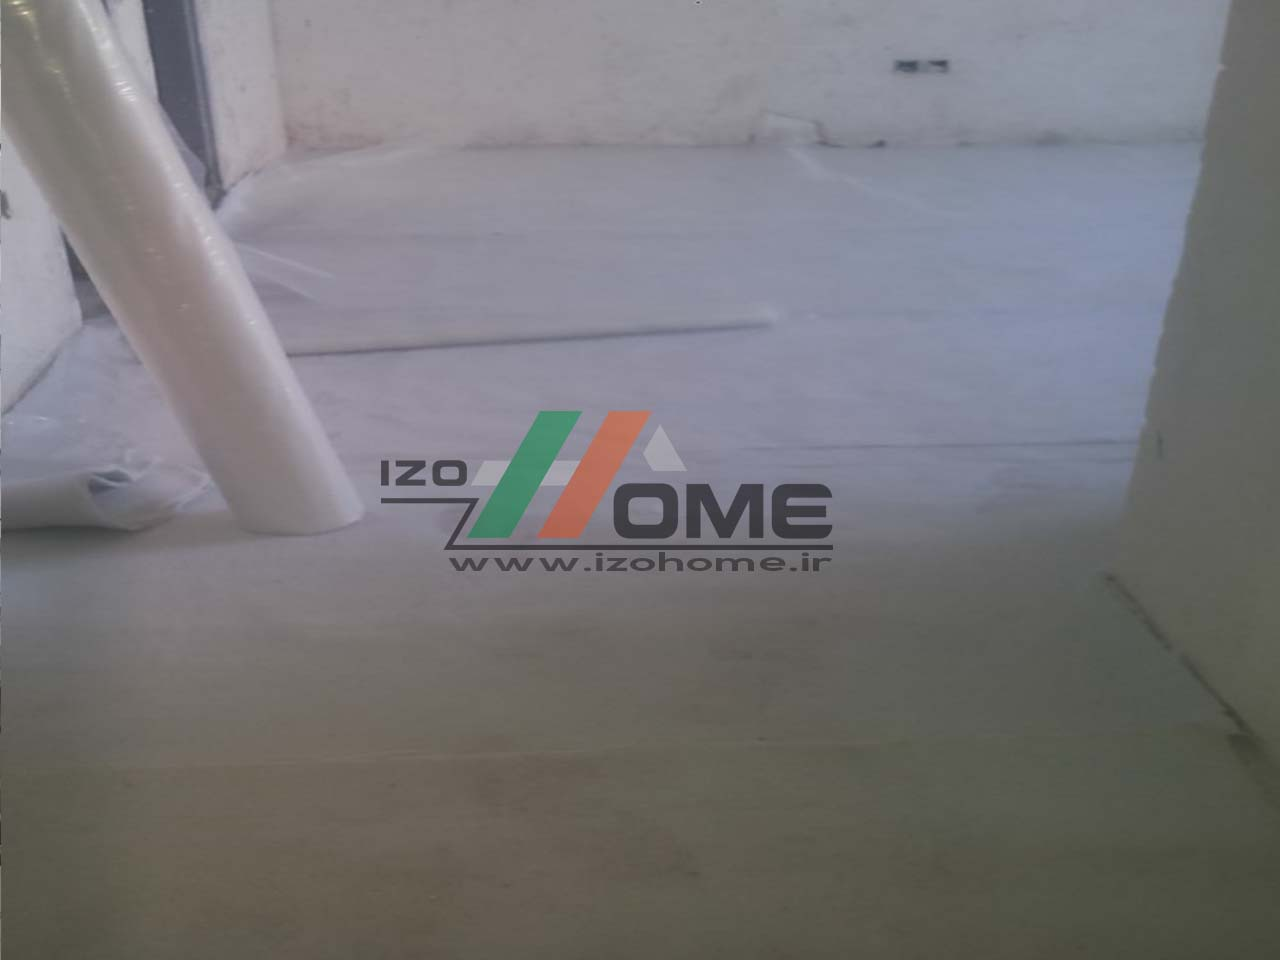 izohome70 - Sound insulation for the floor